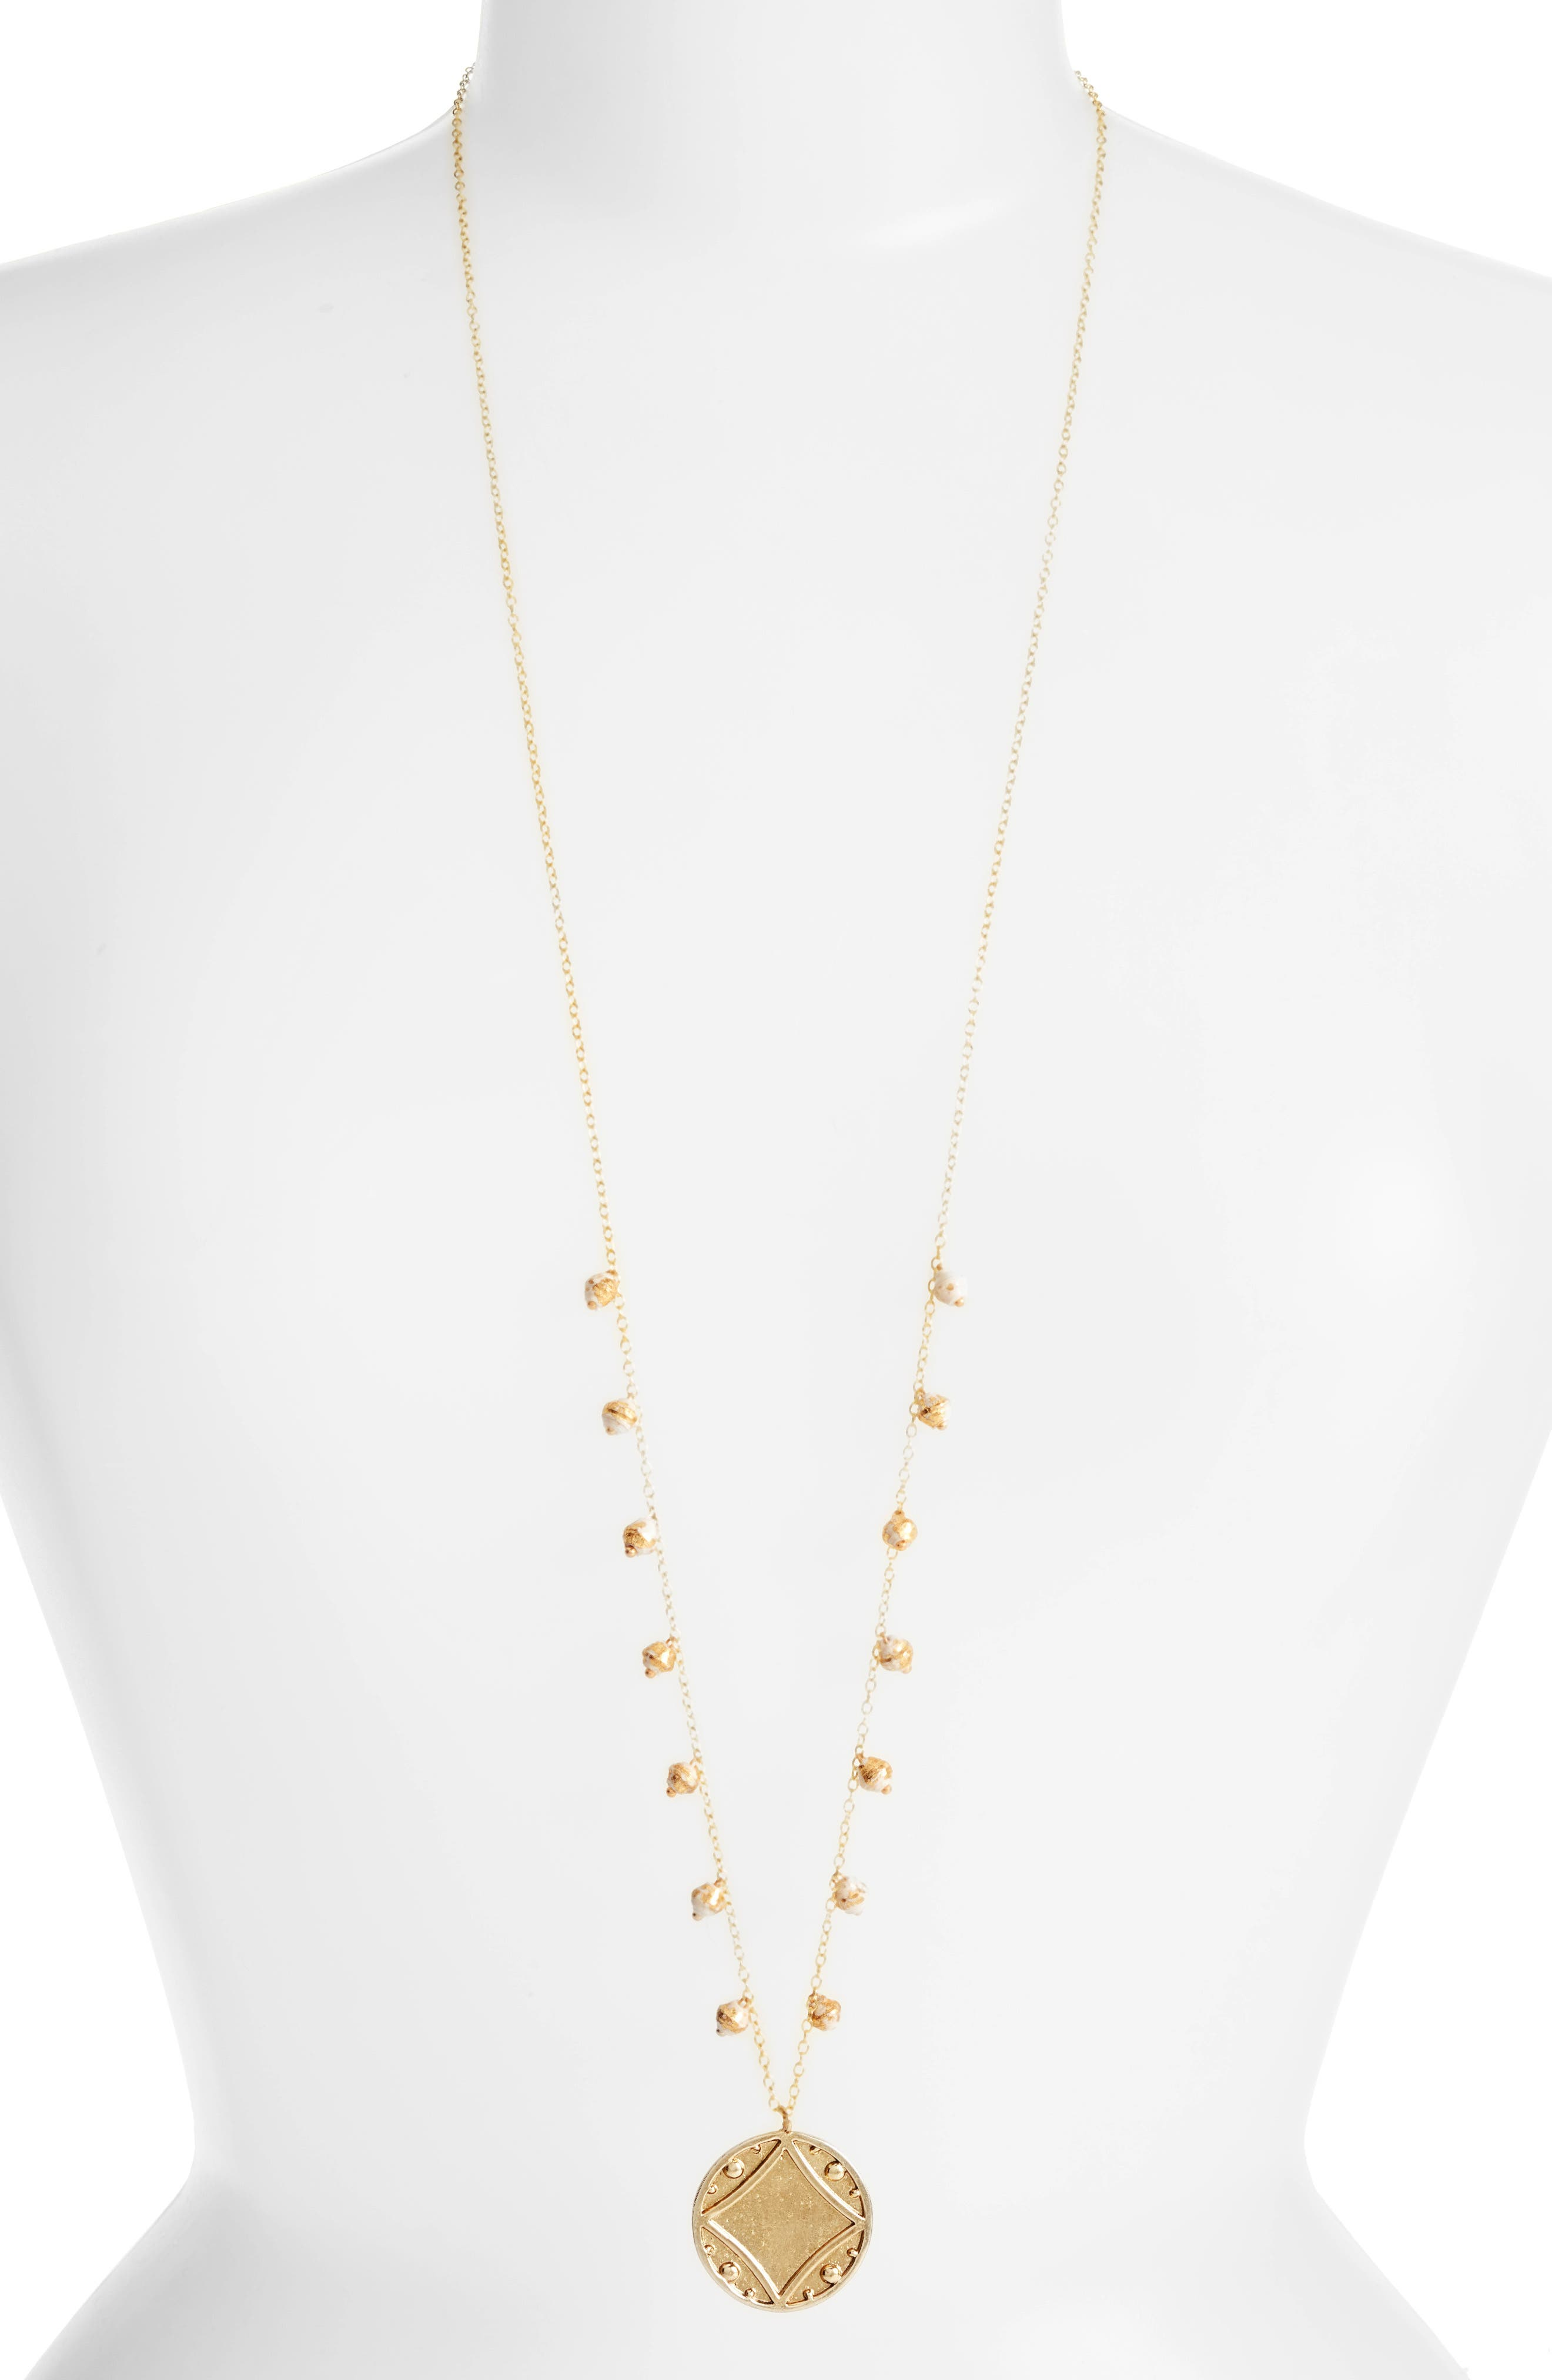 Early Light Pendant Necklace,                         Main,                         color, Cream/ Gold